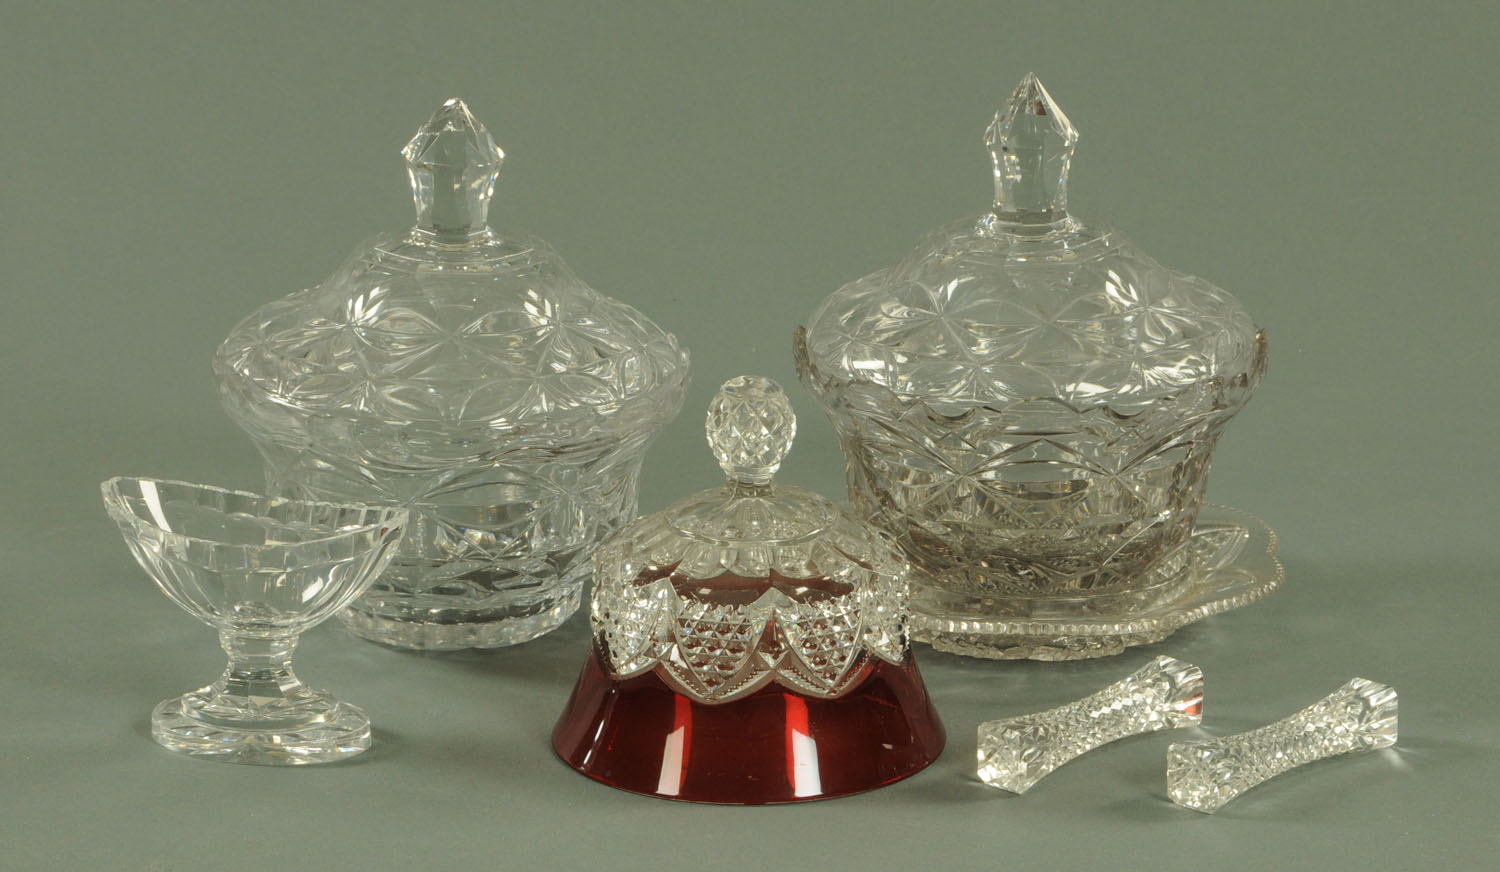 Lot 53 - A pair of cut glass bowls and covers, one with stand, height 20 cm, a pair of cut glass knife rests,